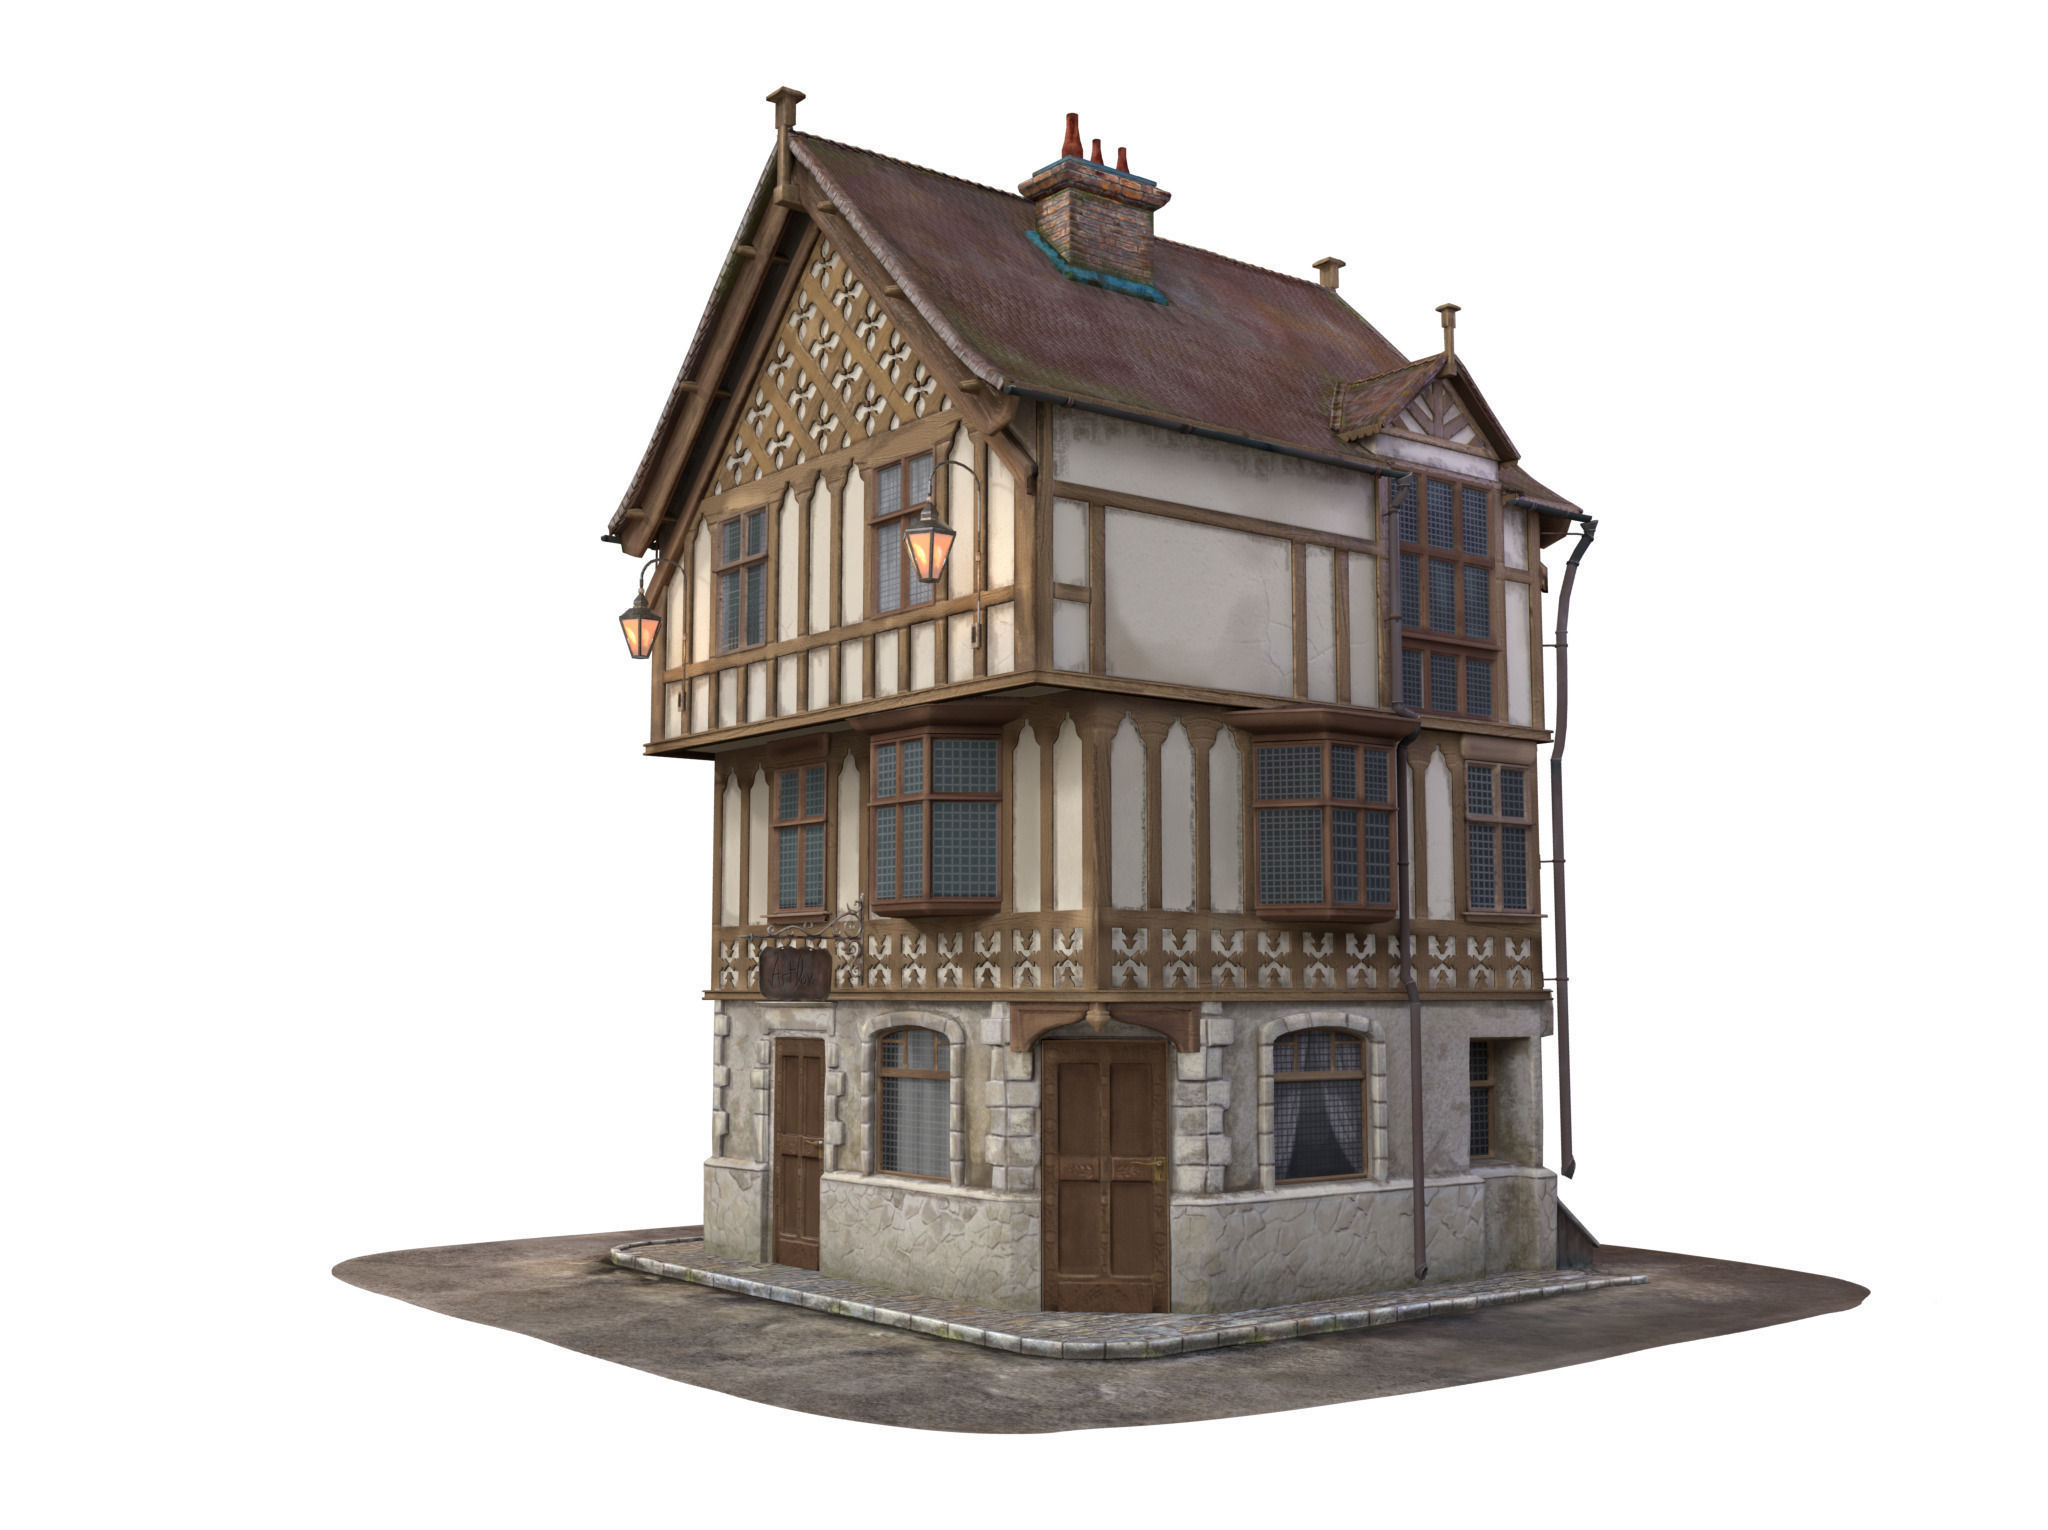 Medieval house 3d model max obj lxo lxl mtl for Exterior 3d model